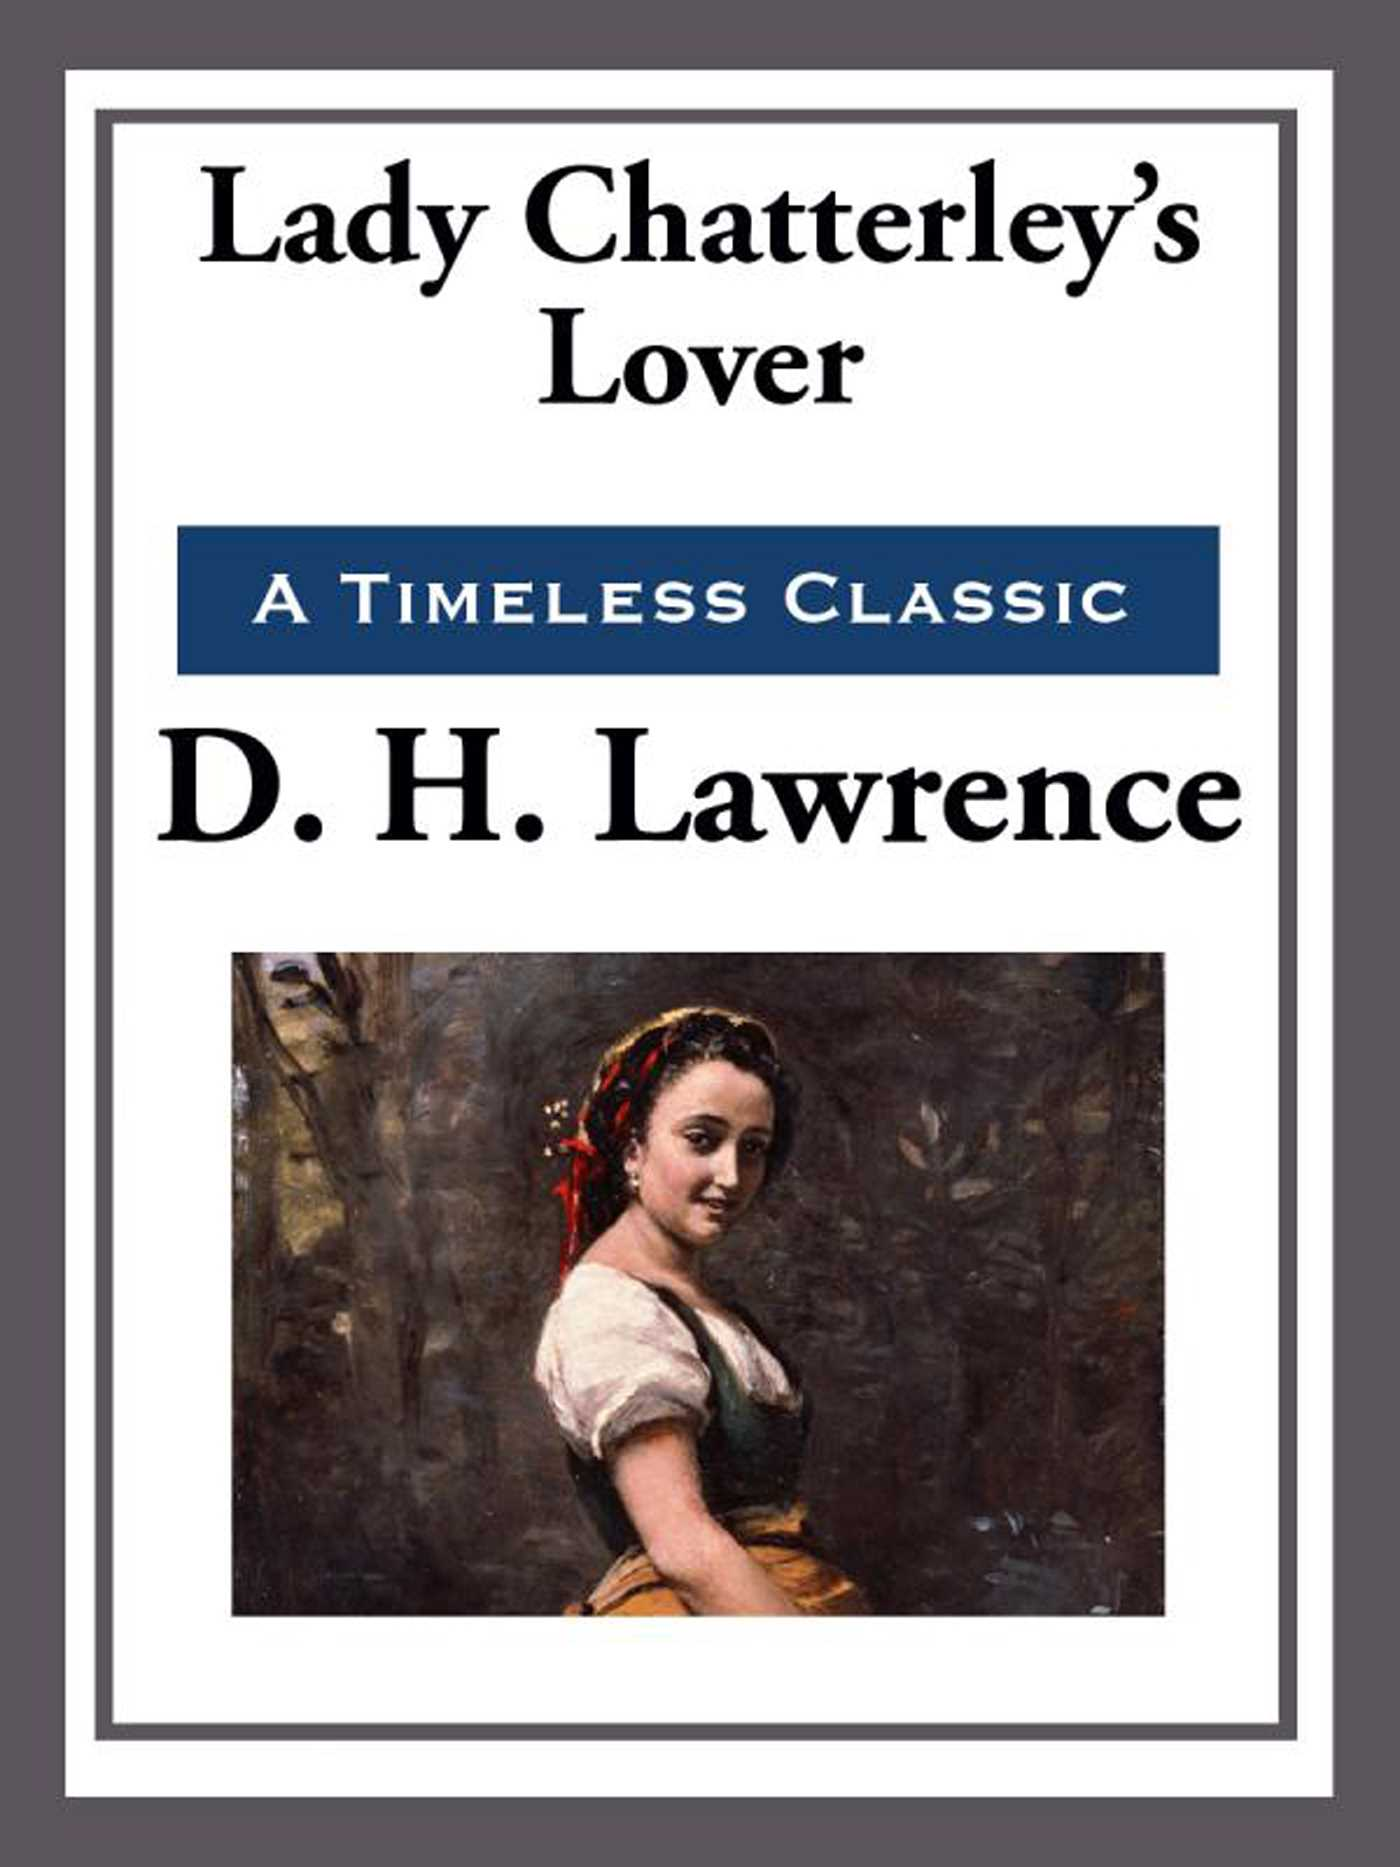 lady chatterleys lover Lady chatterley's lover is a 2015 british romantic drama television film starring holliday grainger, richard madden and james norton it is an adaption by jed mercurio of d h lawrence's 1928 novel lady chatterley's lover.